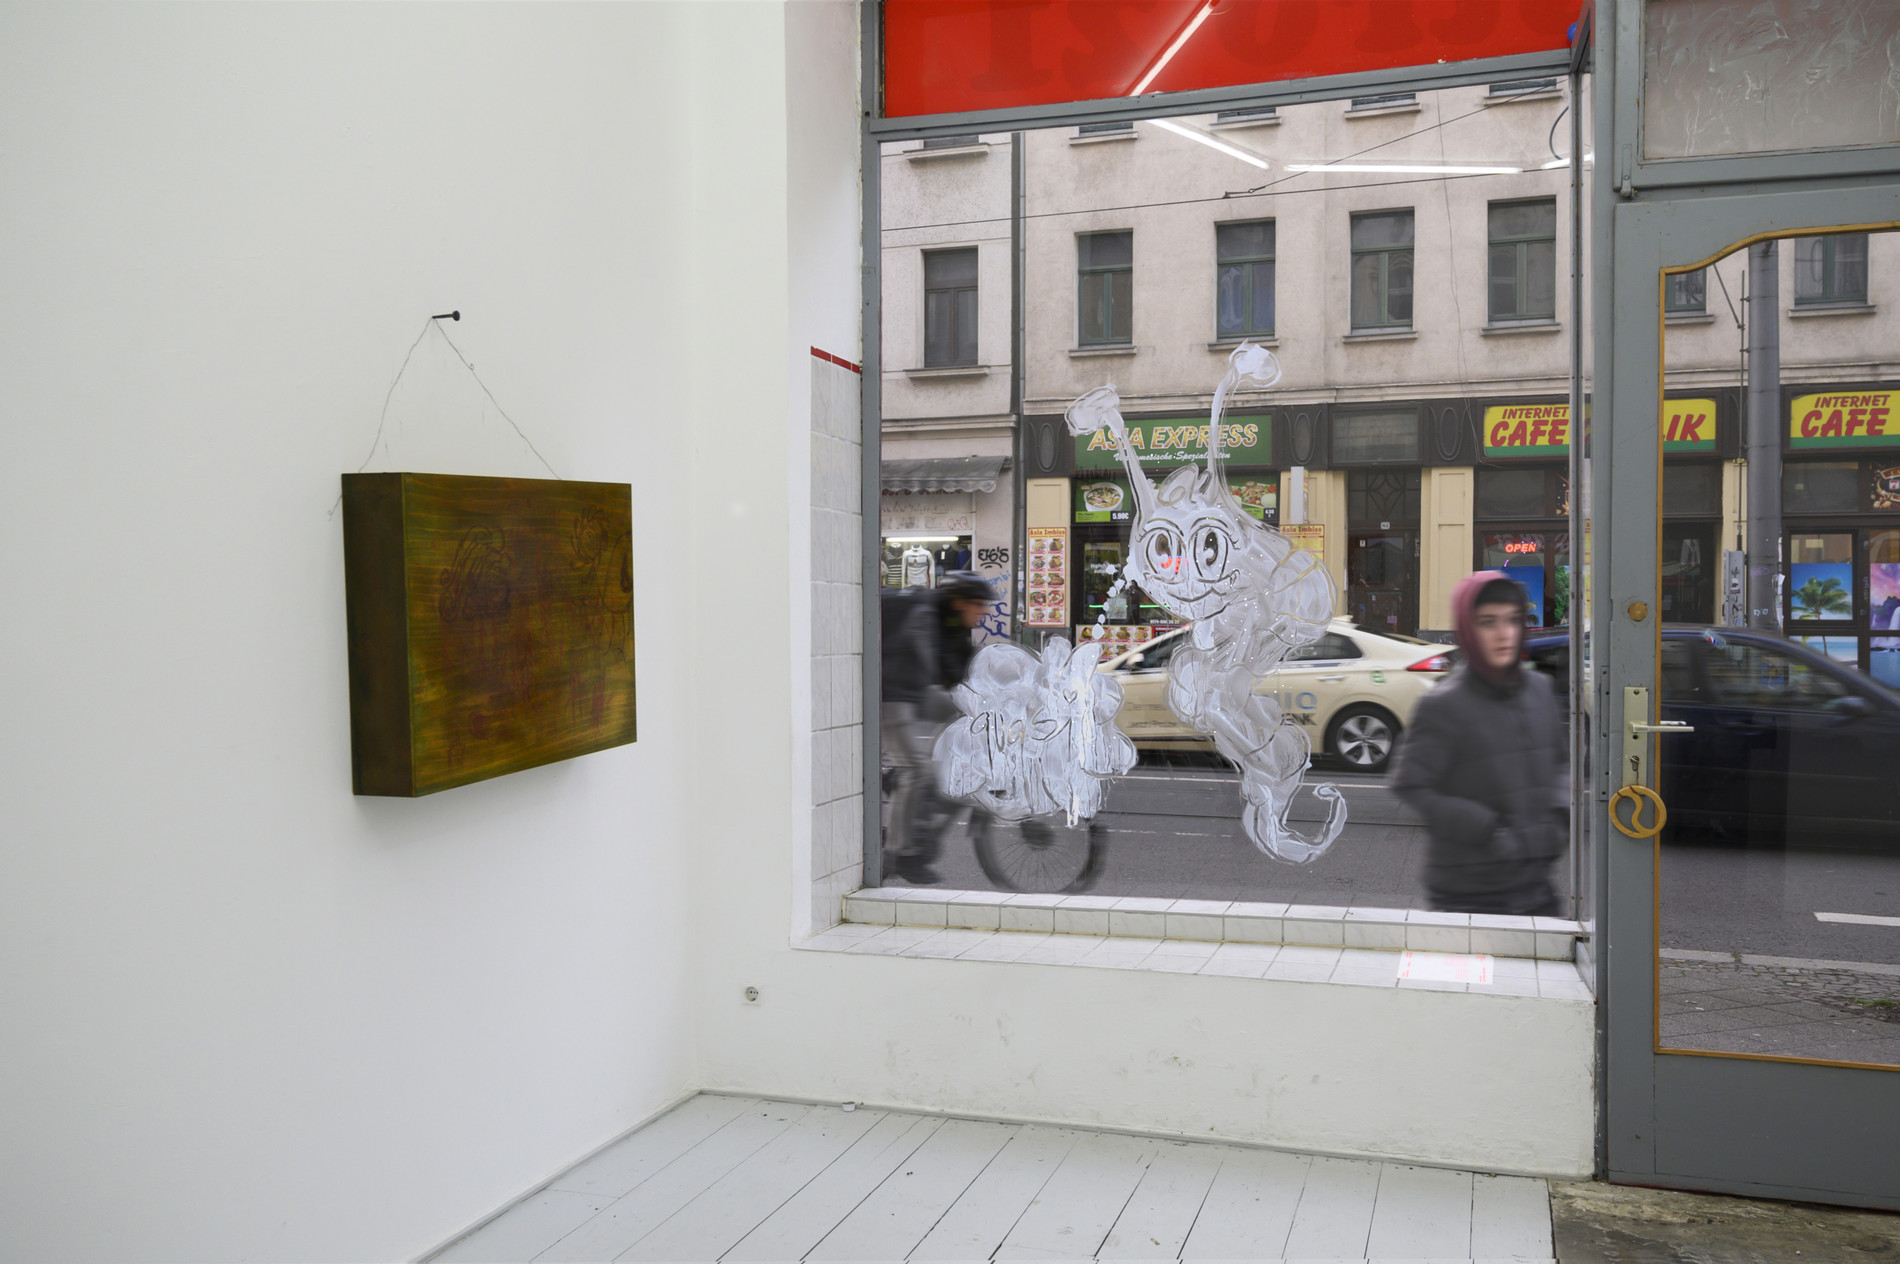 Installation View. Wasting Around: Traditions in Verses at Bistro 21.